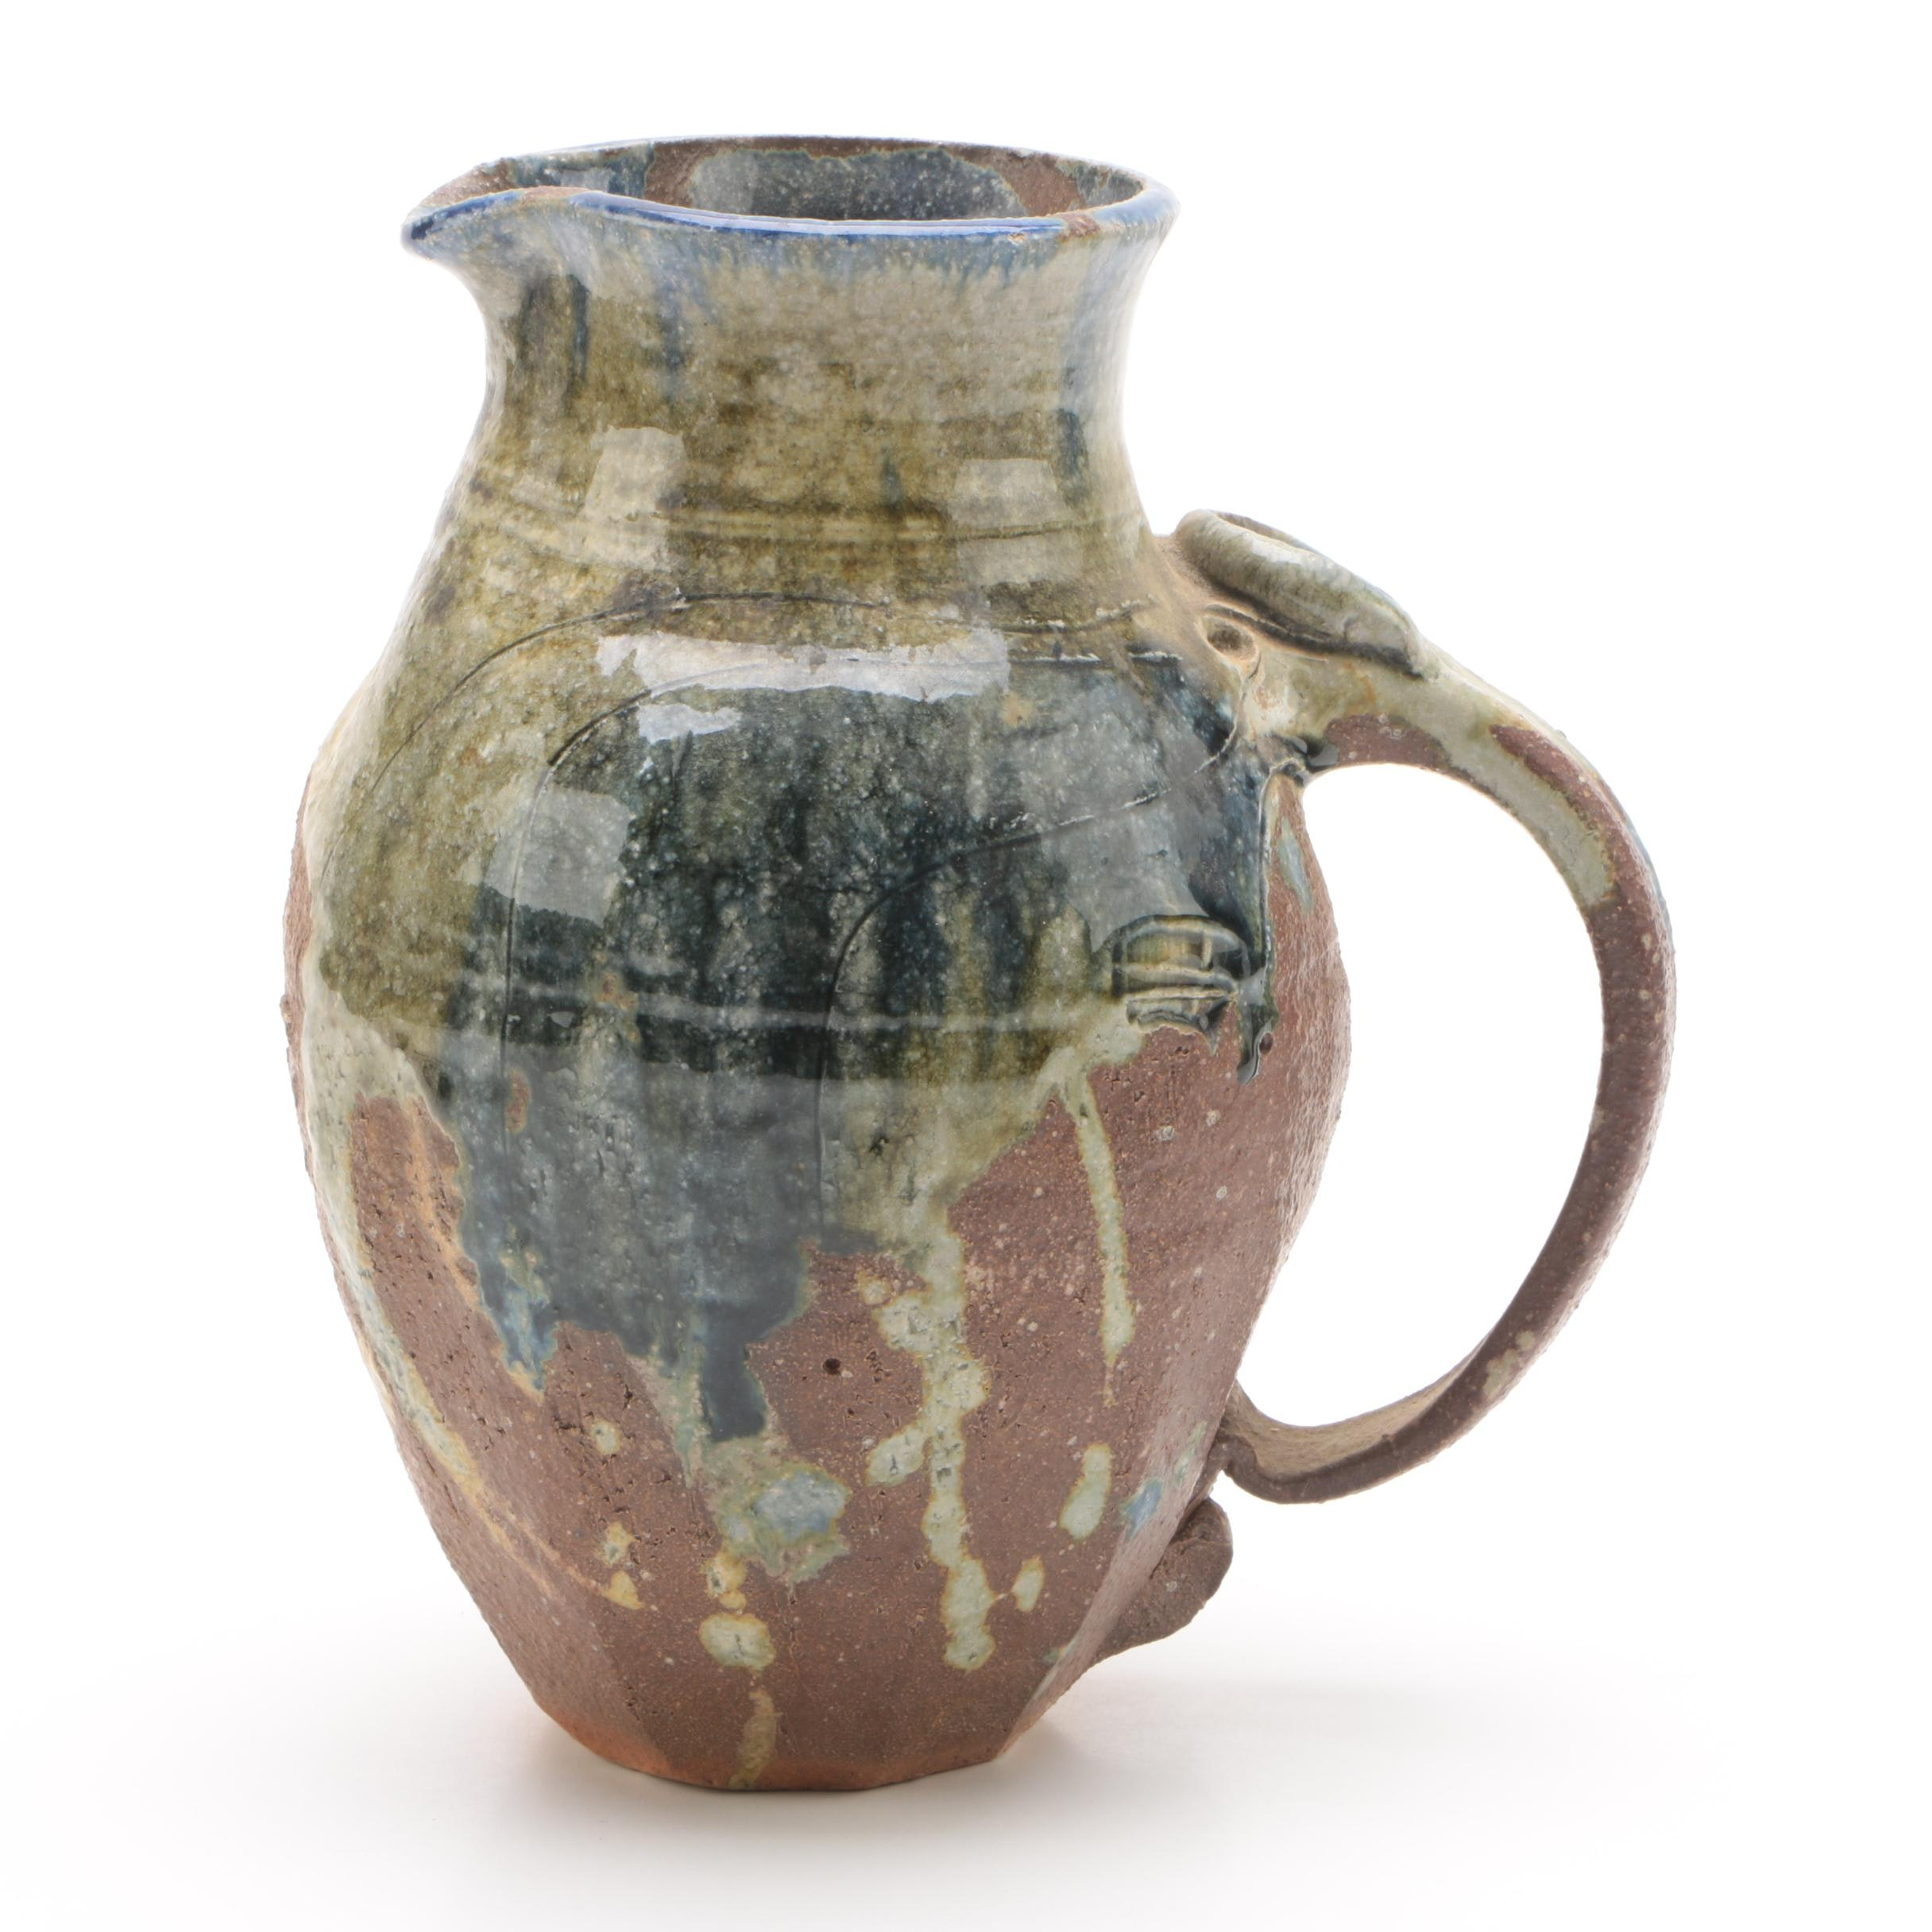 Thrown Stoneware Pitcher with Blue and Green Drip Glaze